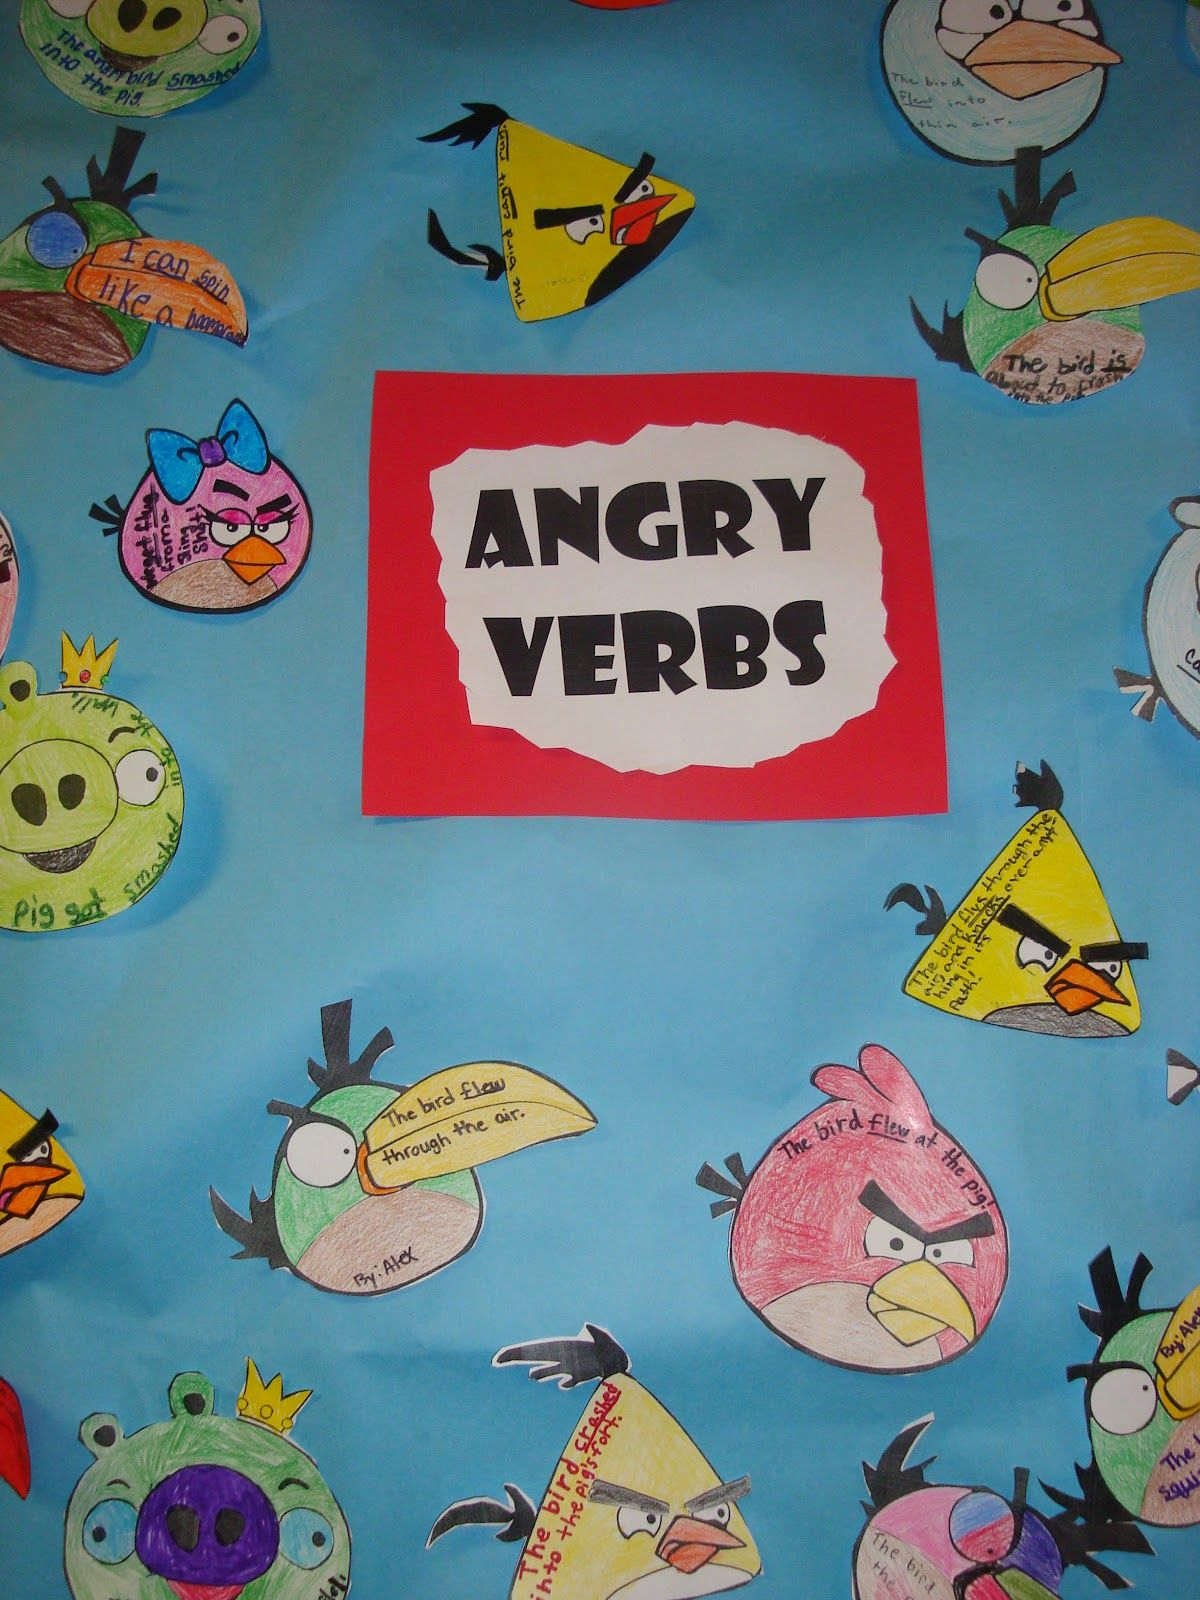 Angry verbs board - teaching kids about verbs! | Education - for ...